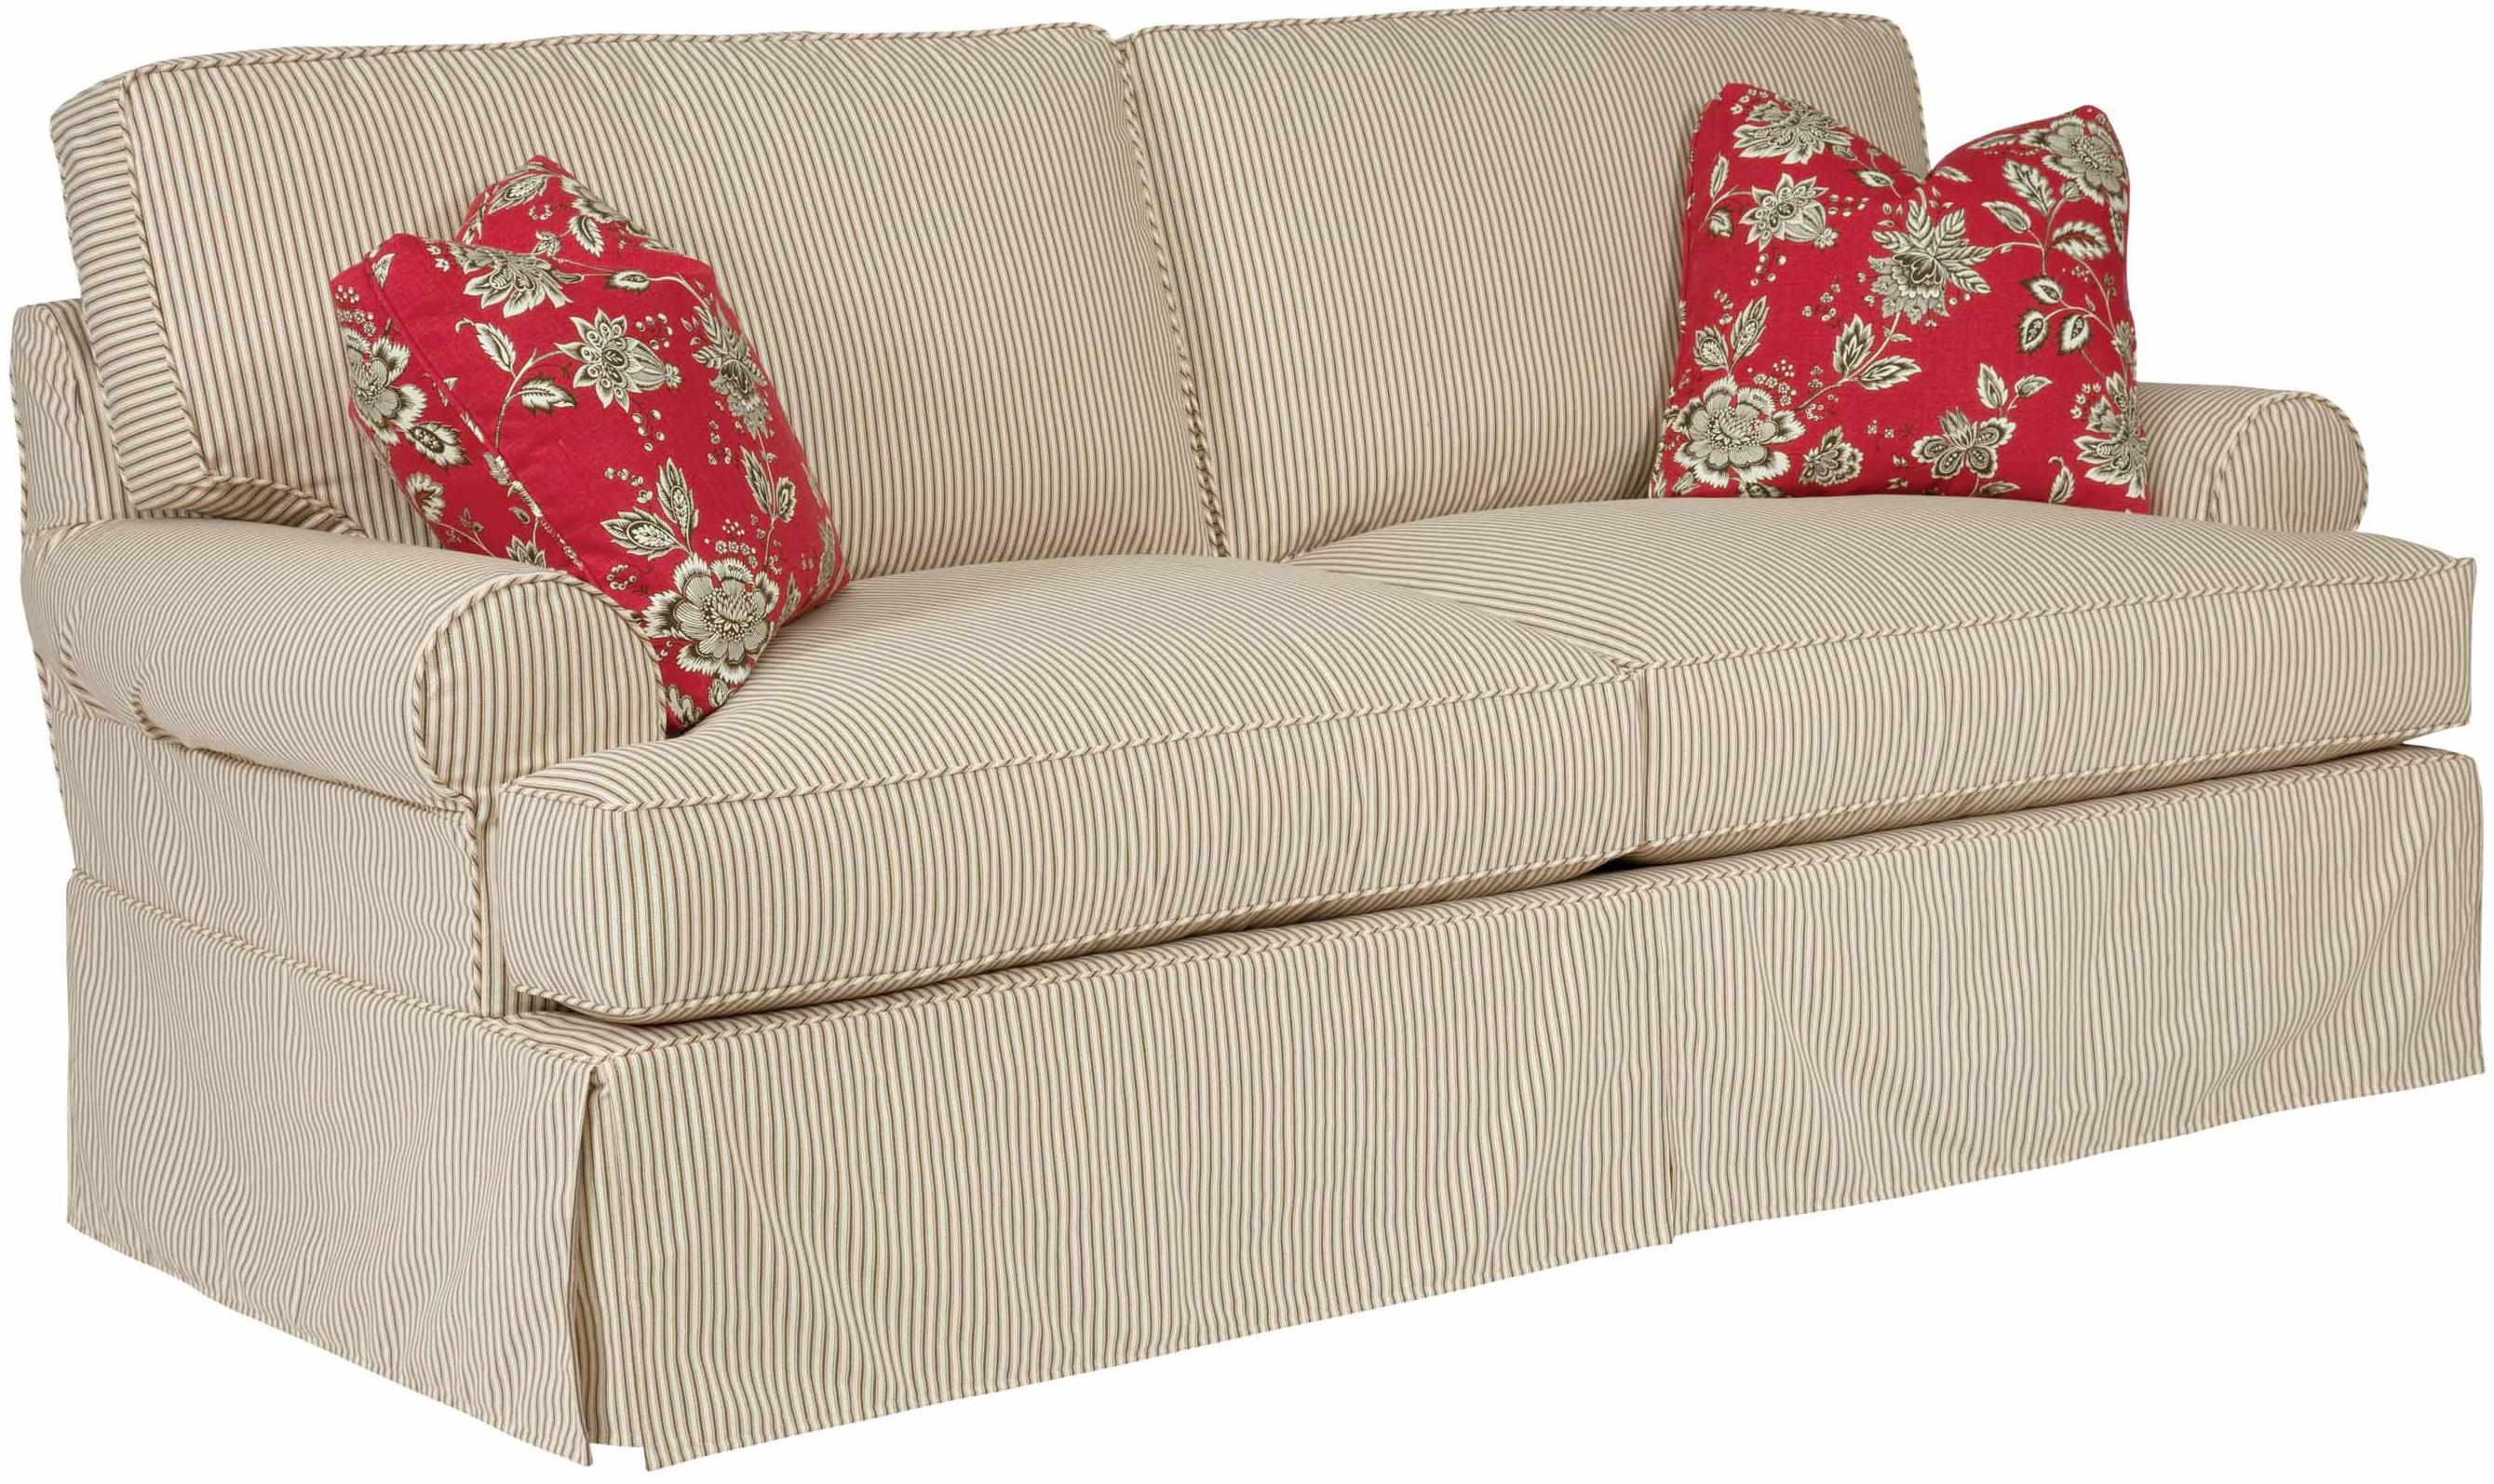 Samantha Two Seat Sofa With Slipcover Tailoring & Loose Pillow Intended For Loose Pillow Back Sofas (Image 14 of 20)